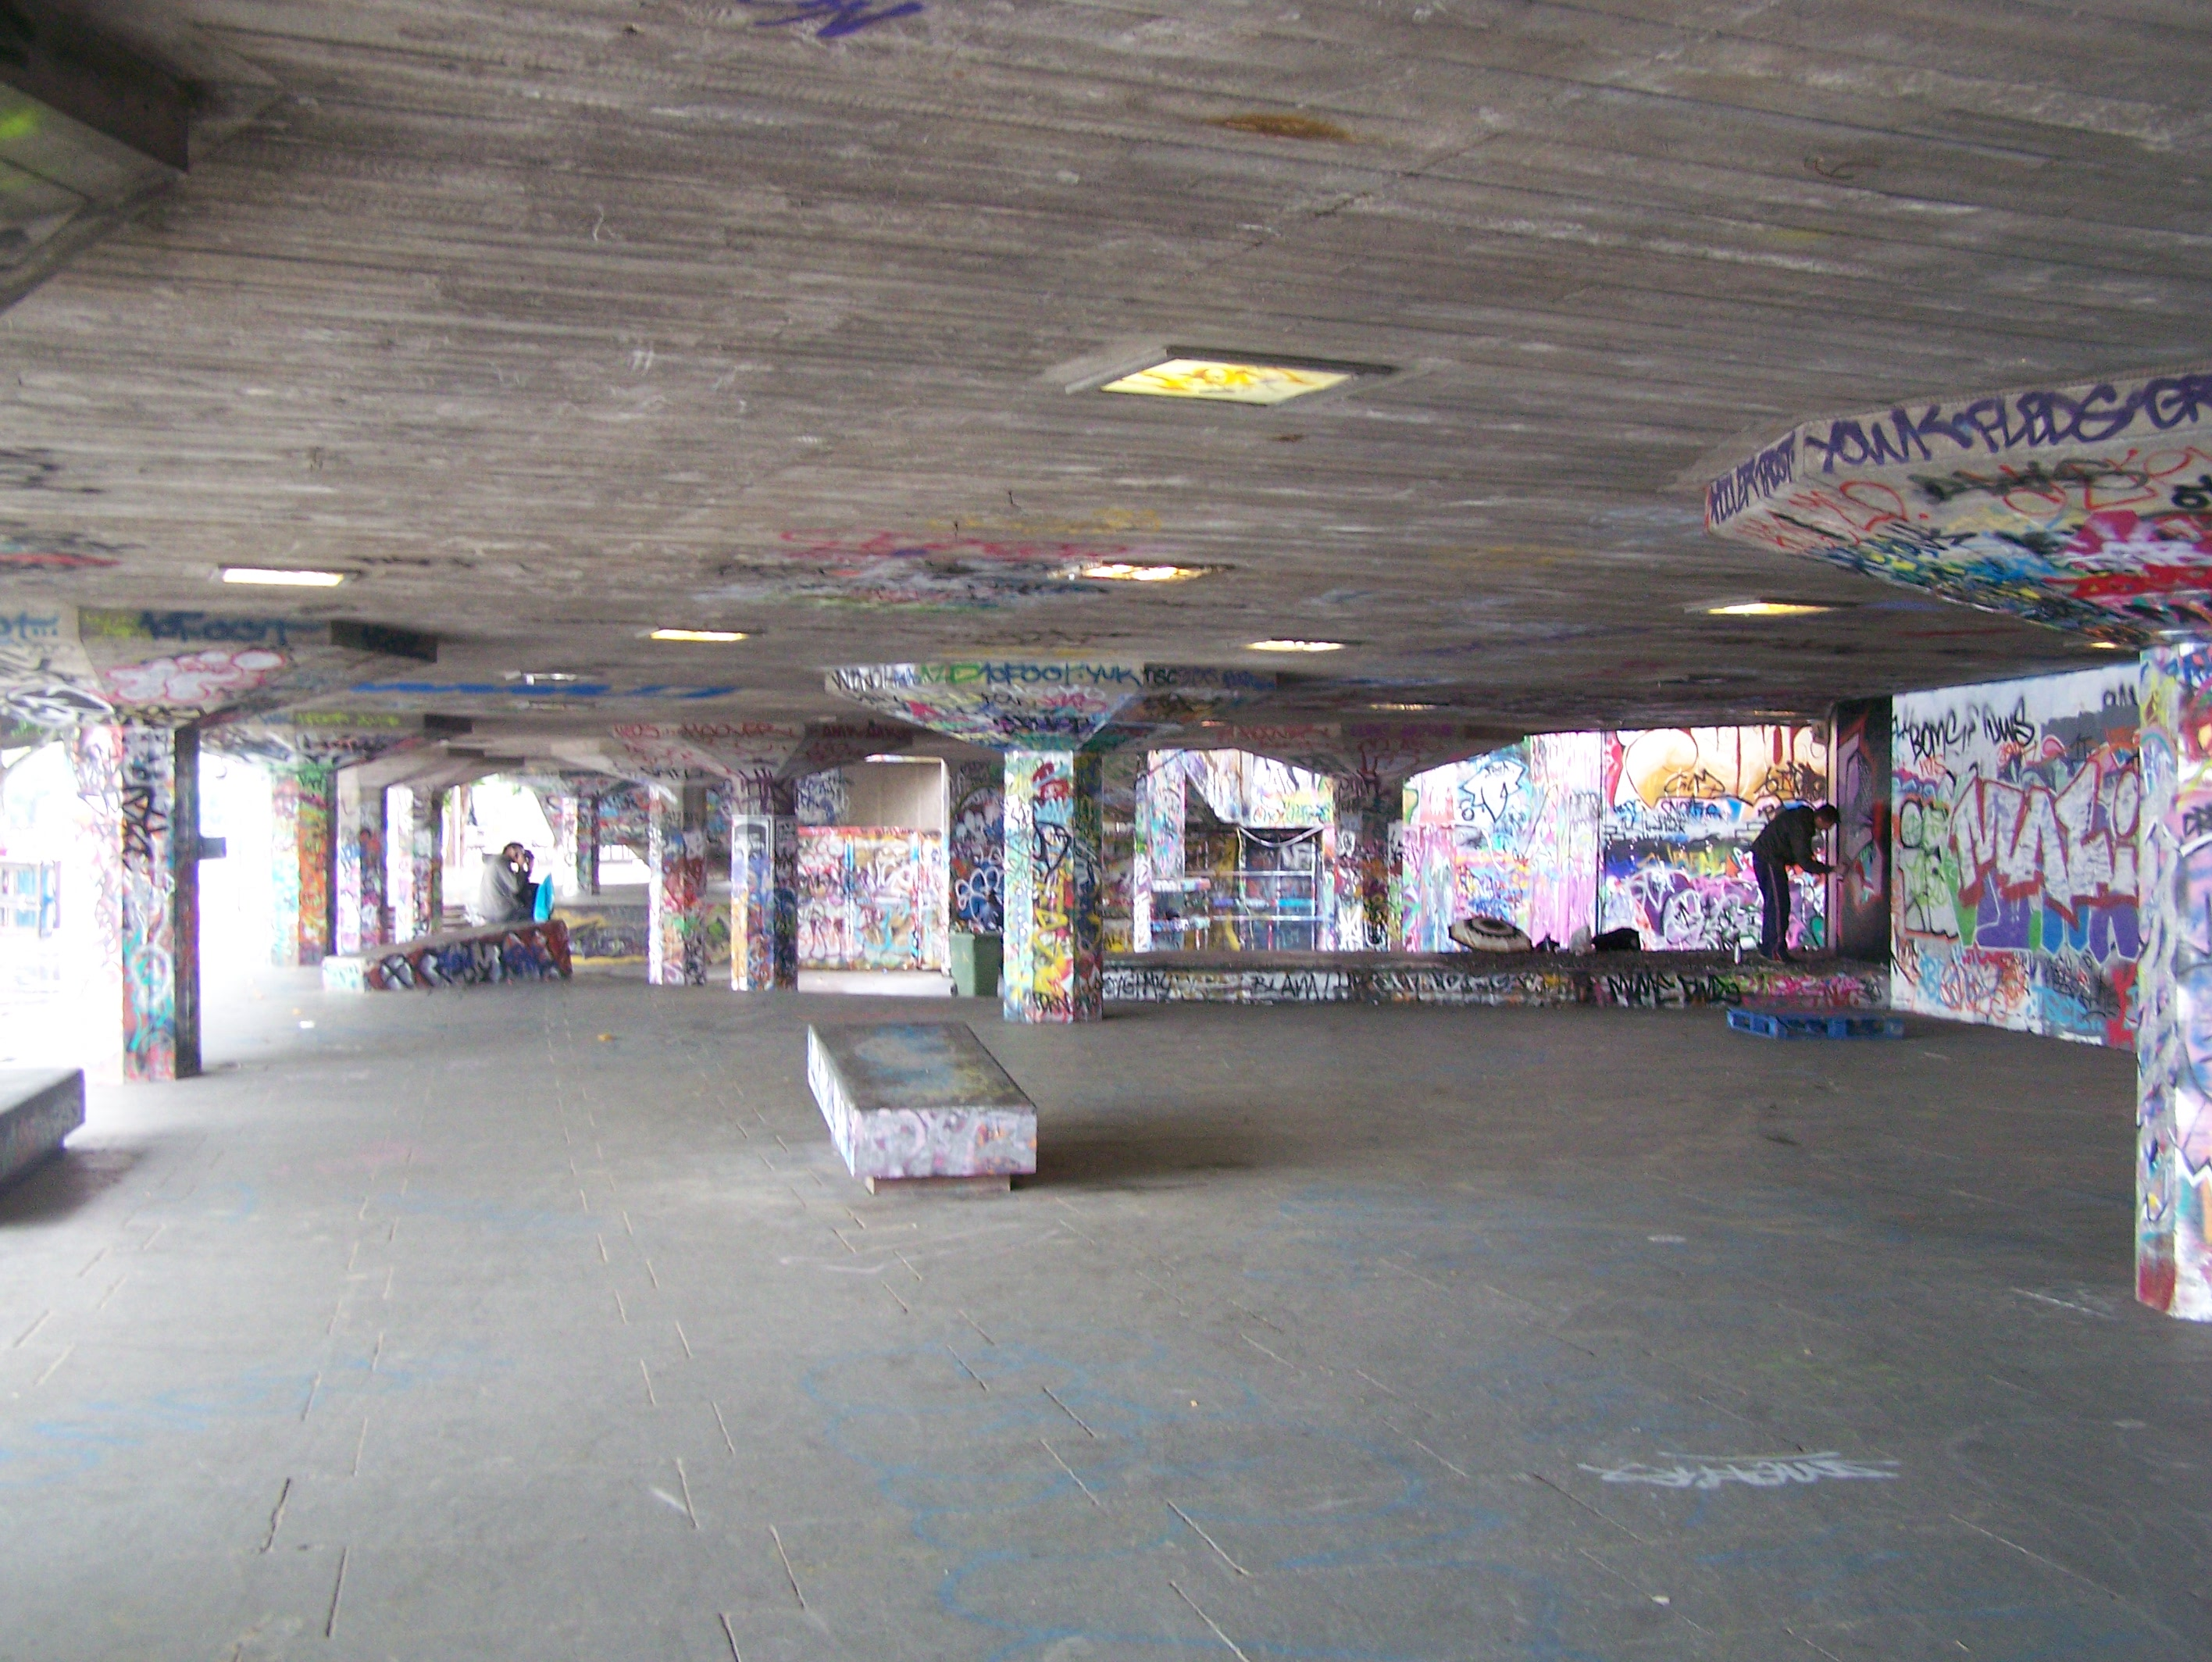 Undercroft  By T.frewin (Own work) [CC-BY-SA-3.0 (http://creativecommons.org/licenses/by-sa/3.0)], via Wikimedia Commons